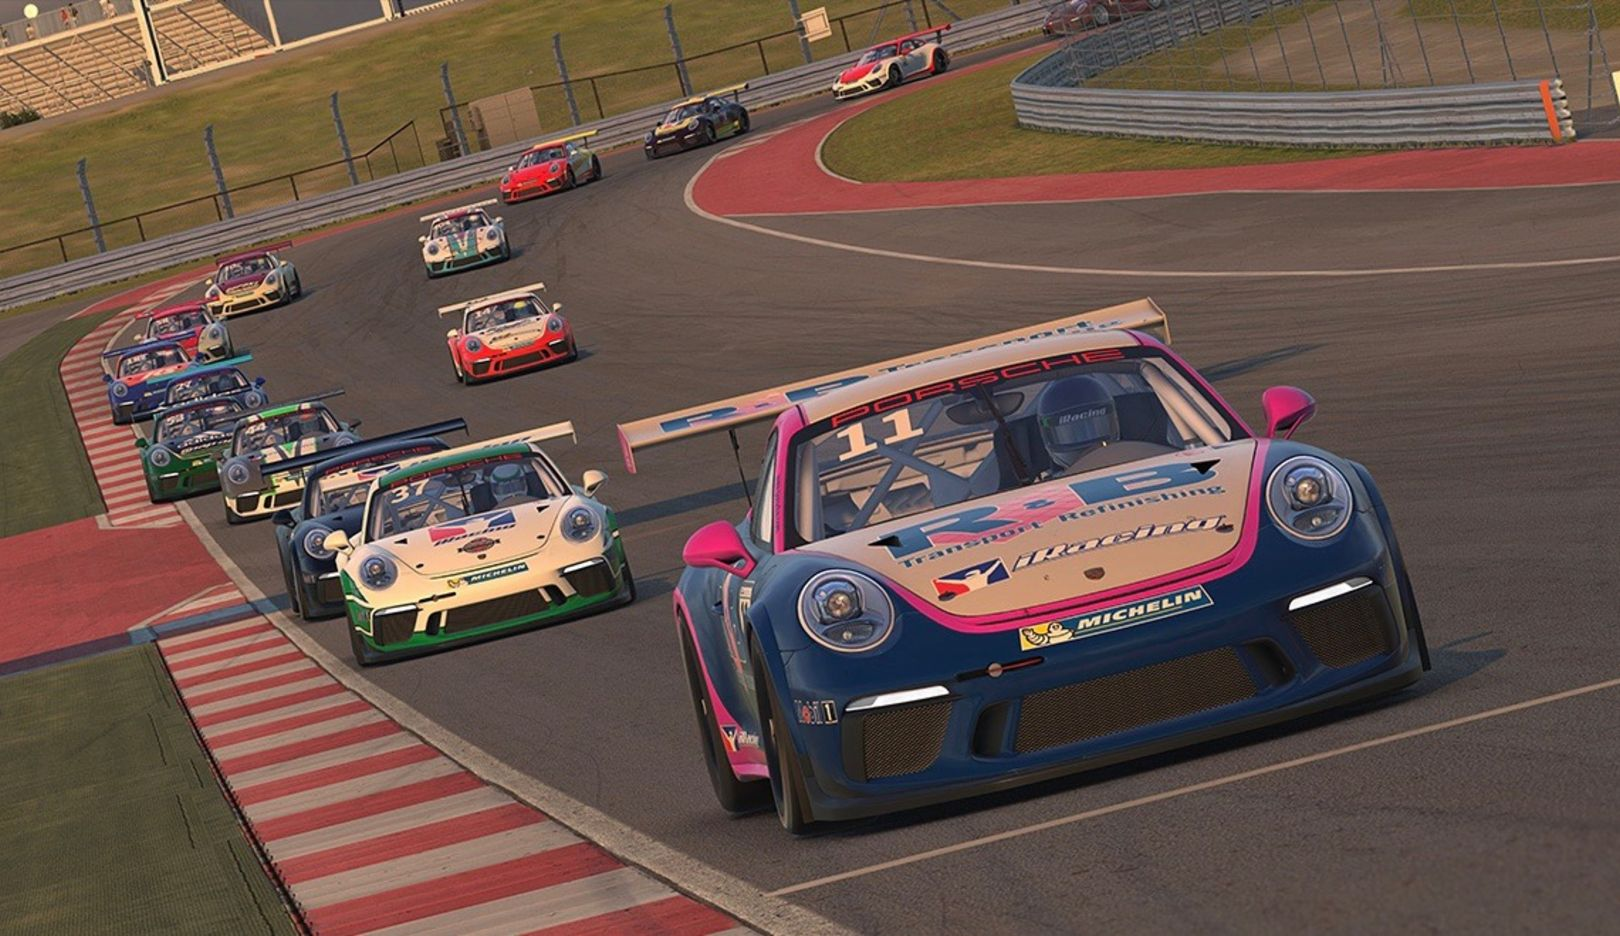 911 GT3 Cup, Porsche iRacing World Championship Series, 2018, Porsche AG